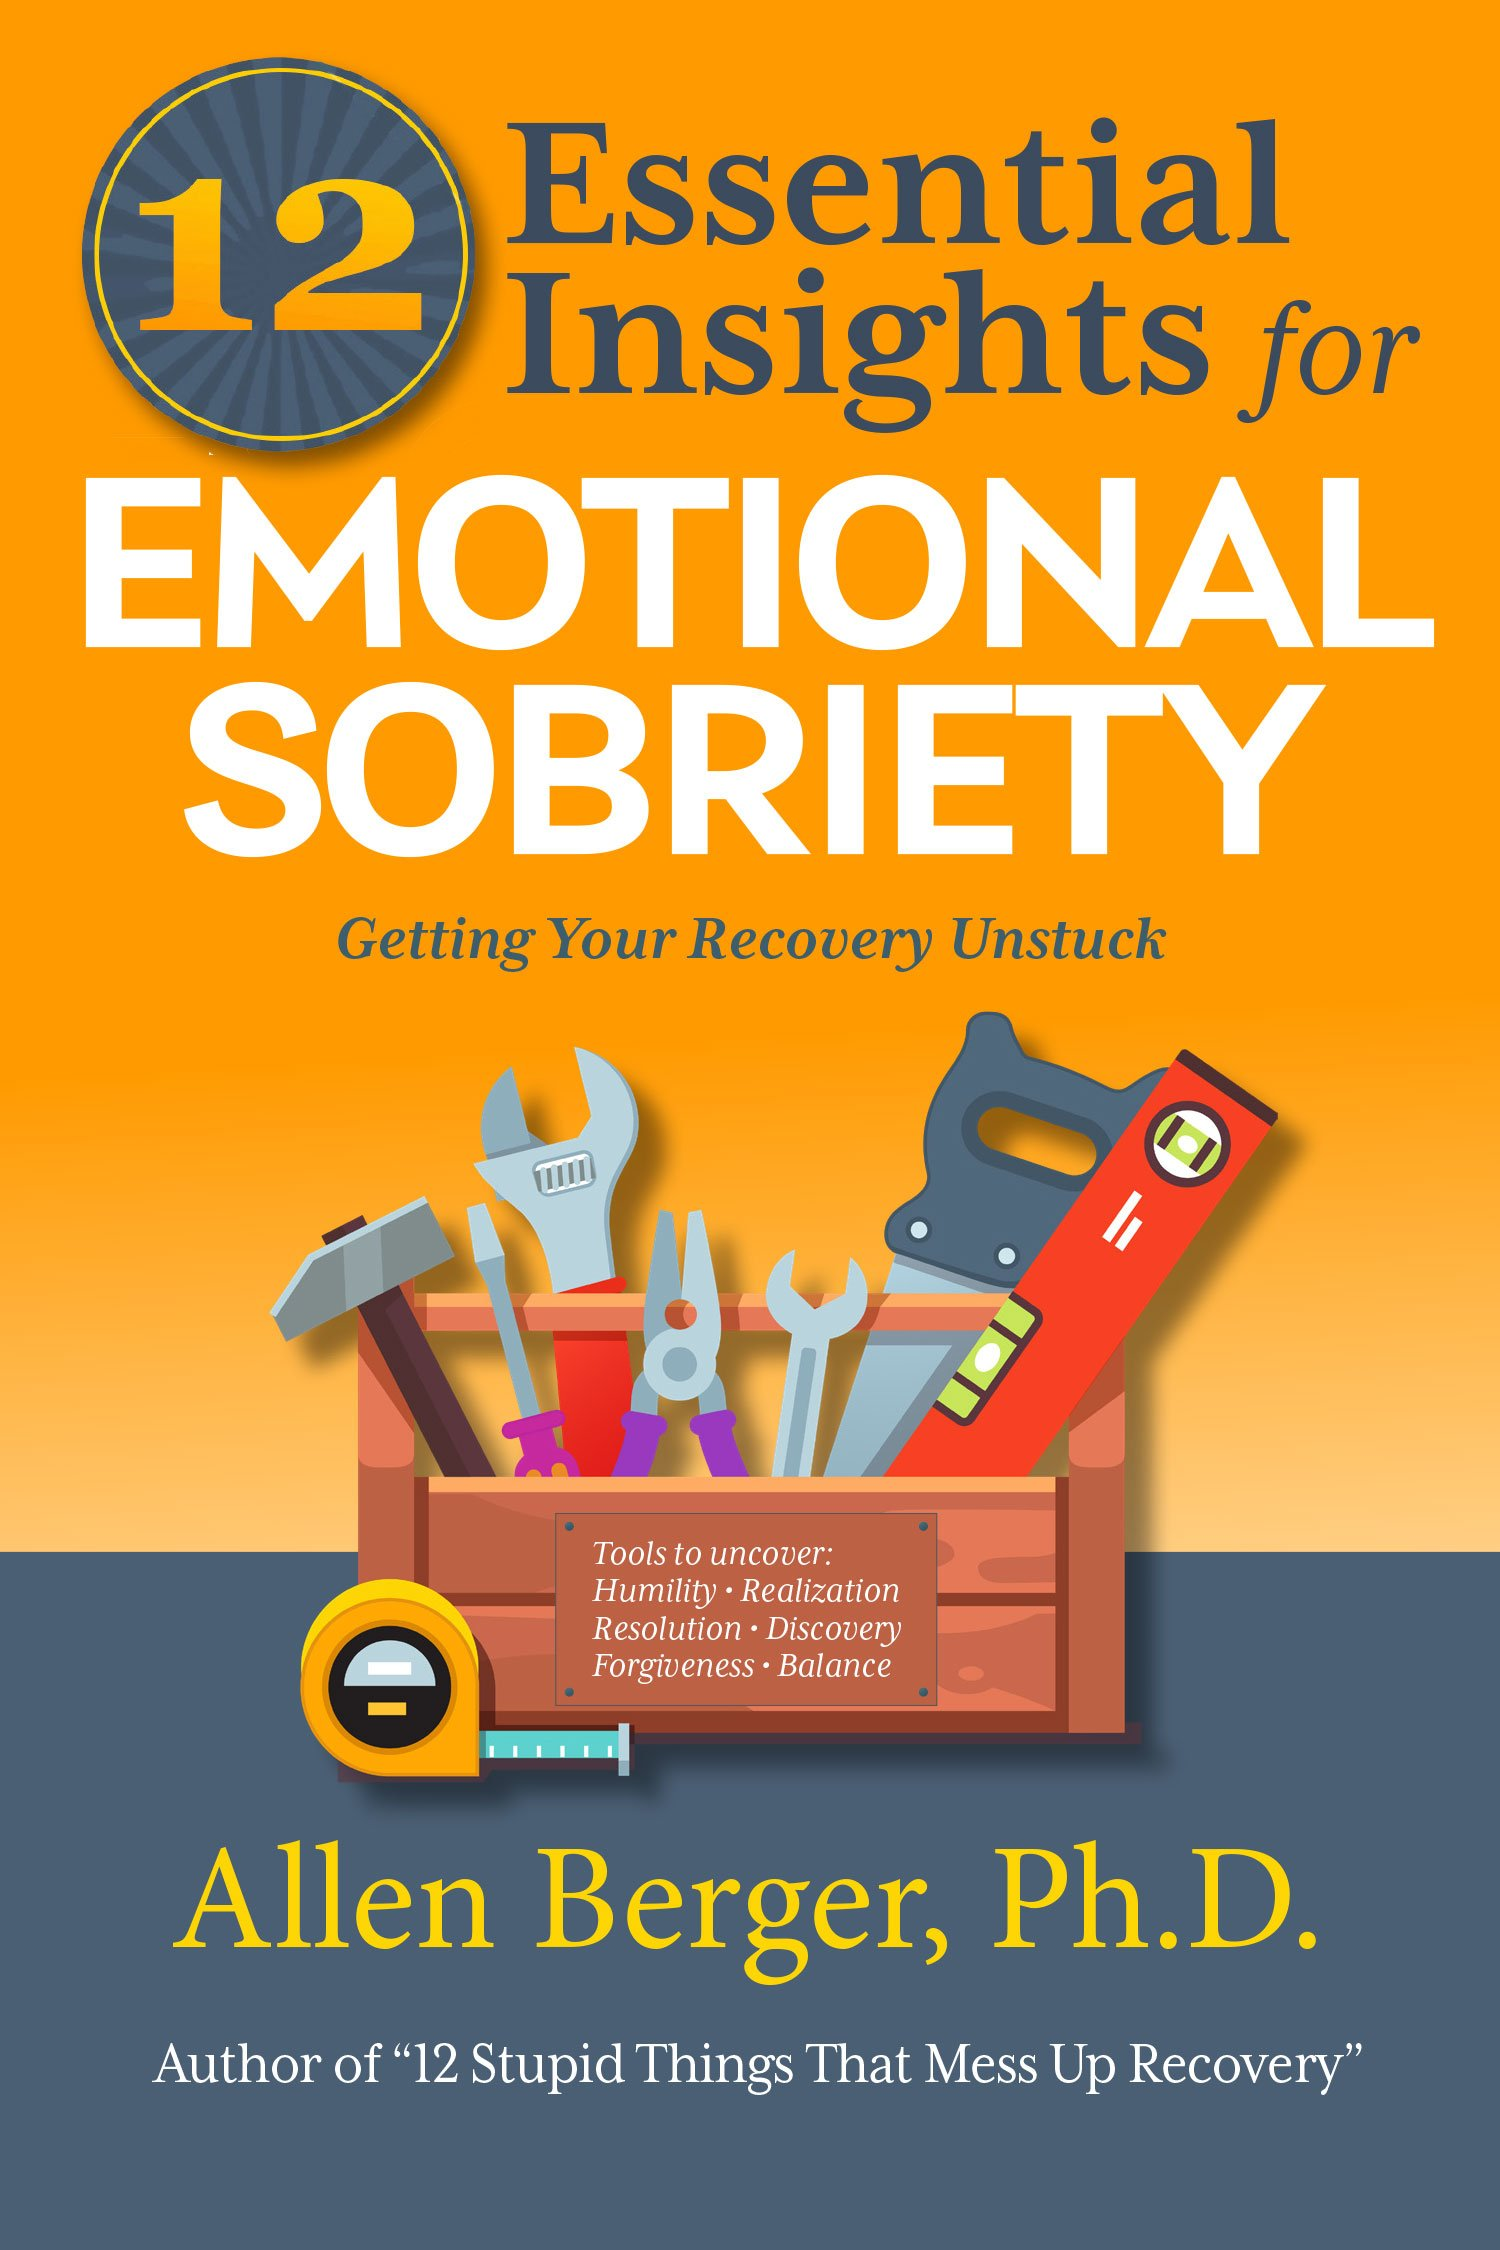 12-Essential-Insights-for-Emotional-Sobriety